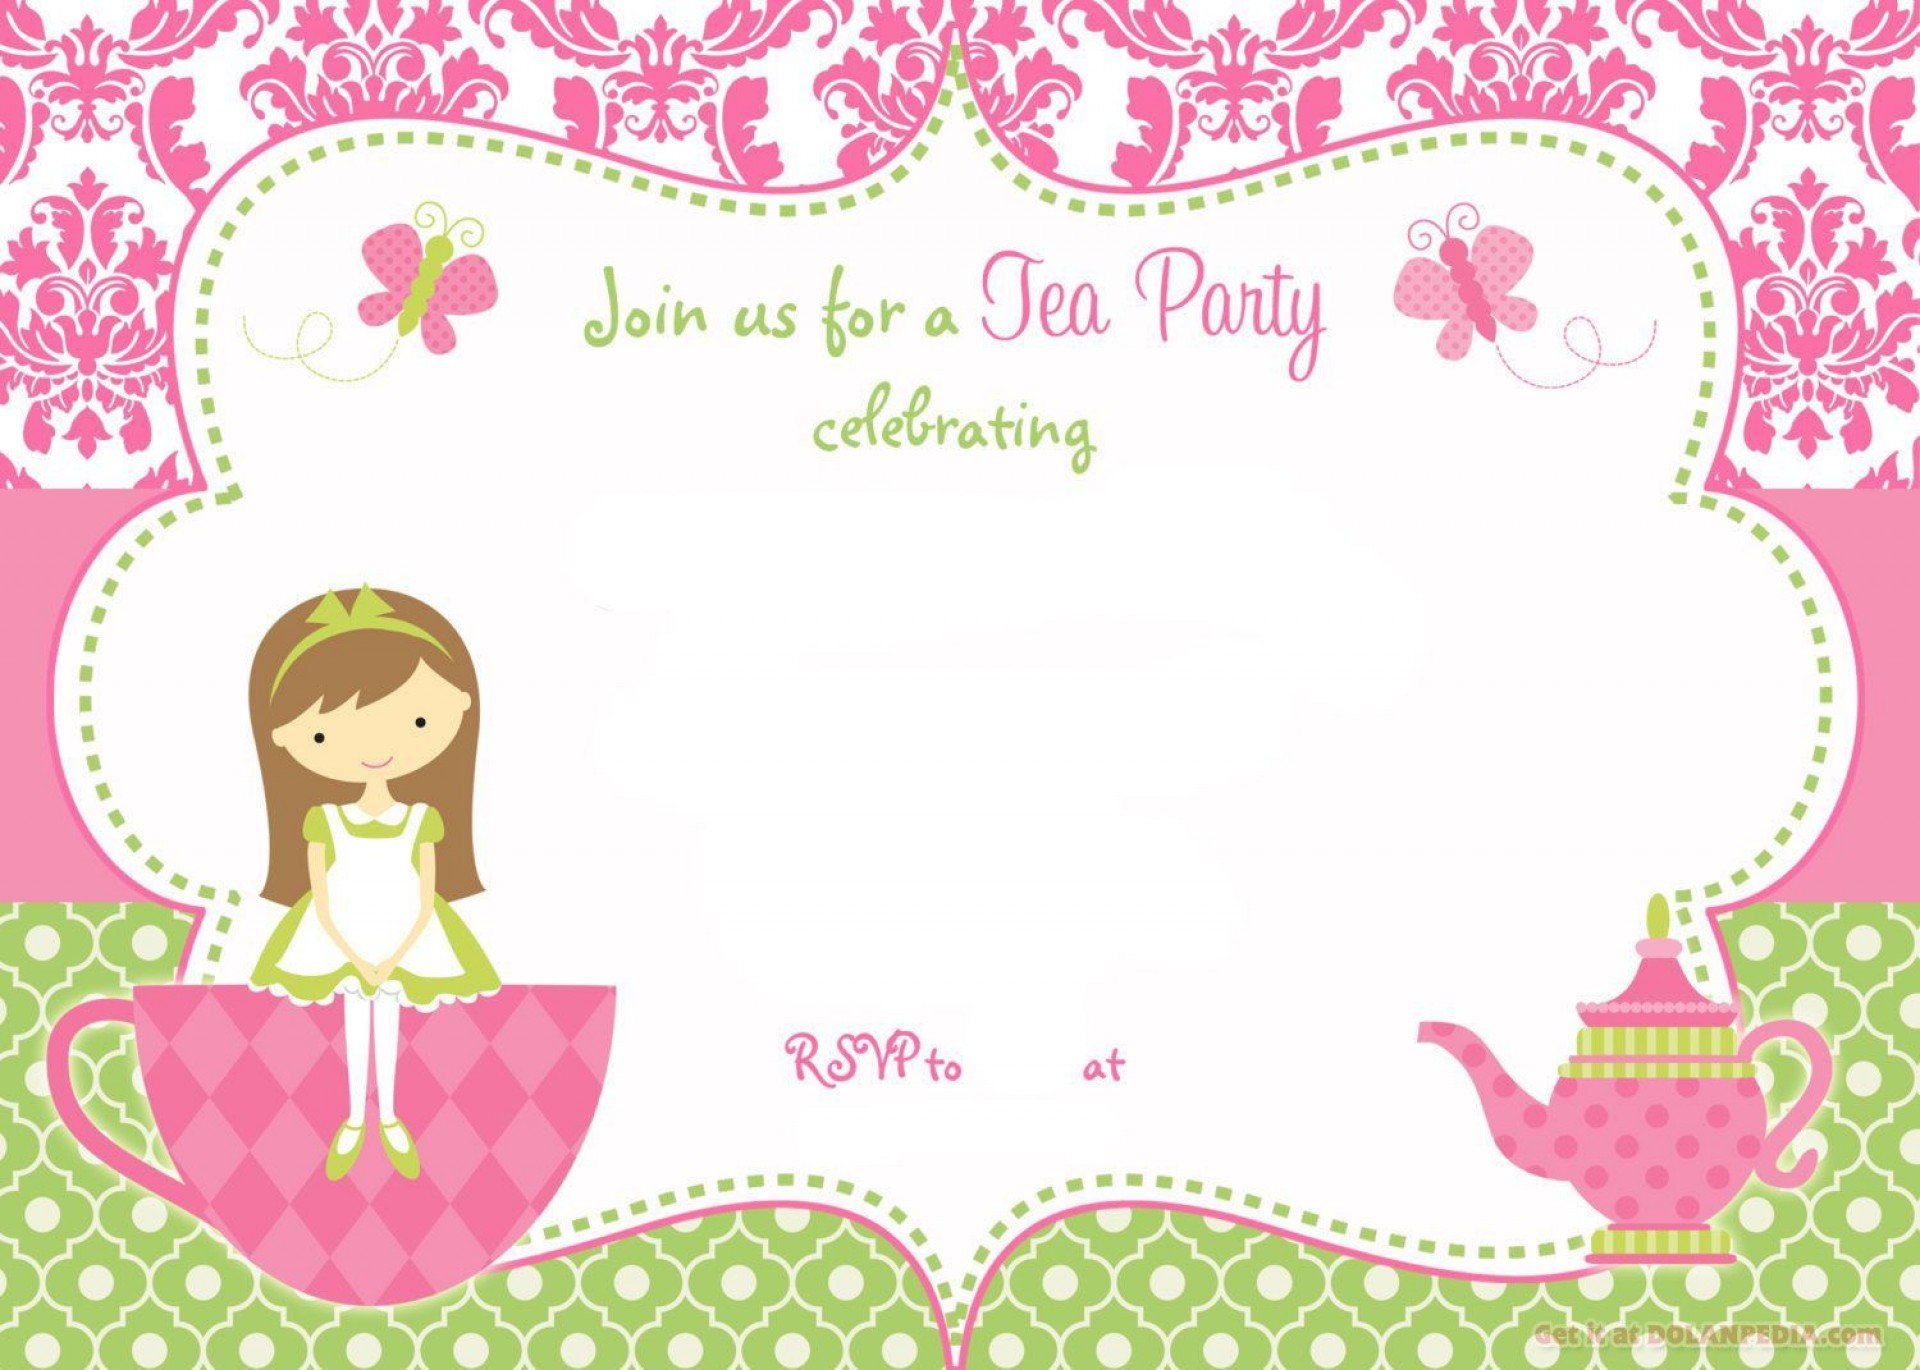 002 Shocking Tea Party Invitation Template High Def  Vintage Free Editable Card Pdf1920